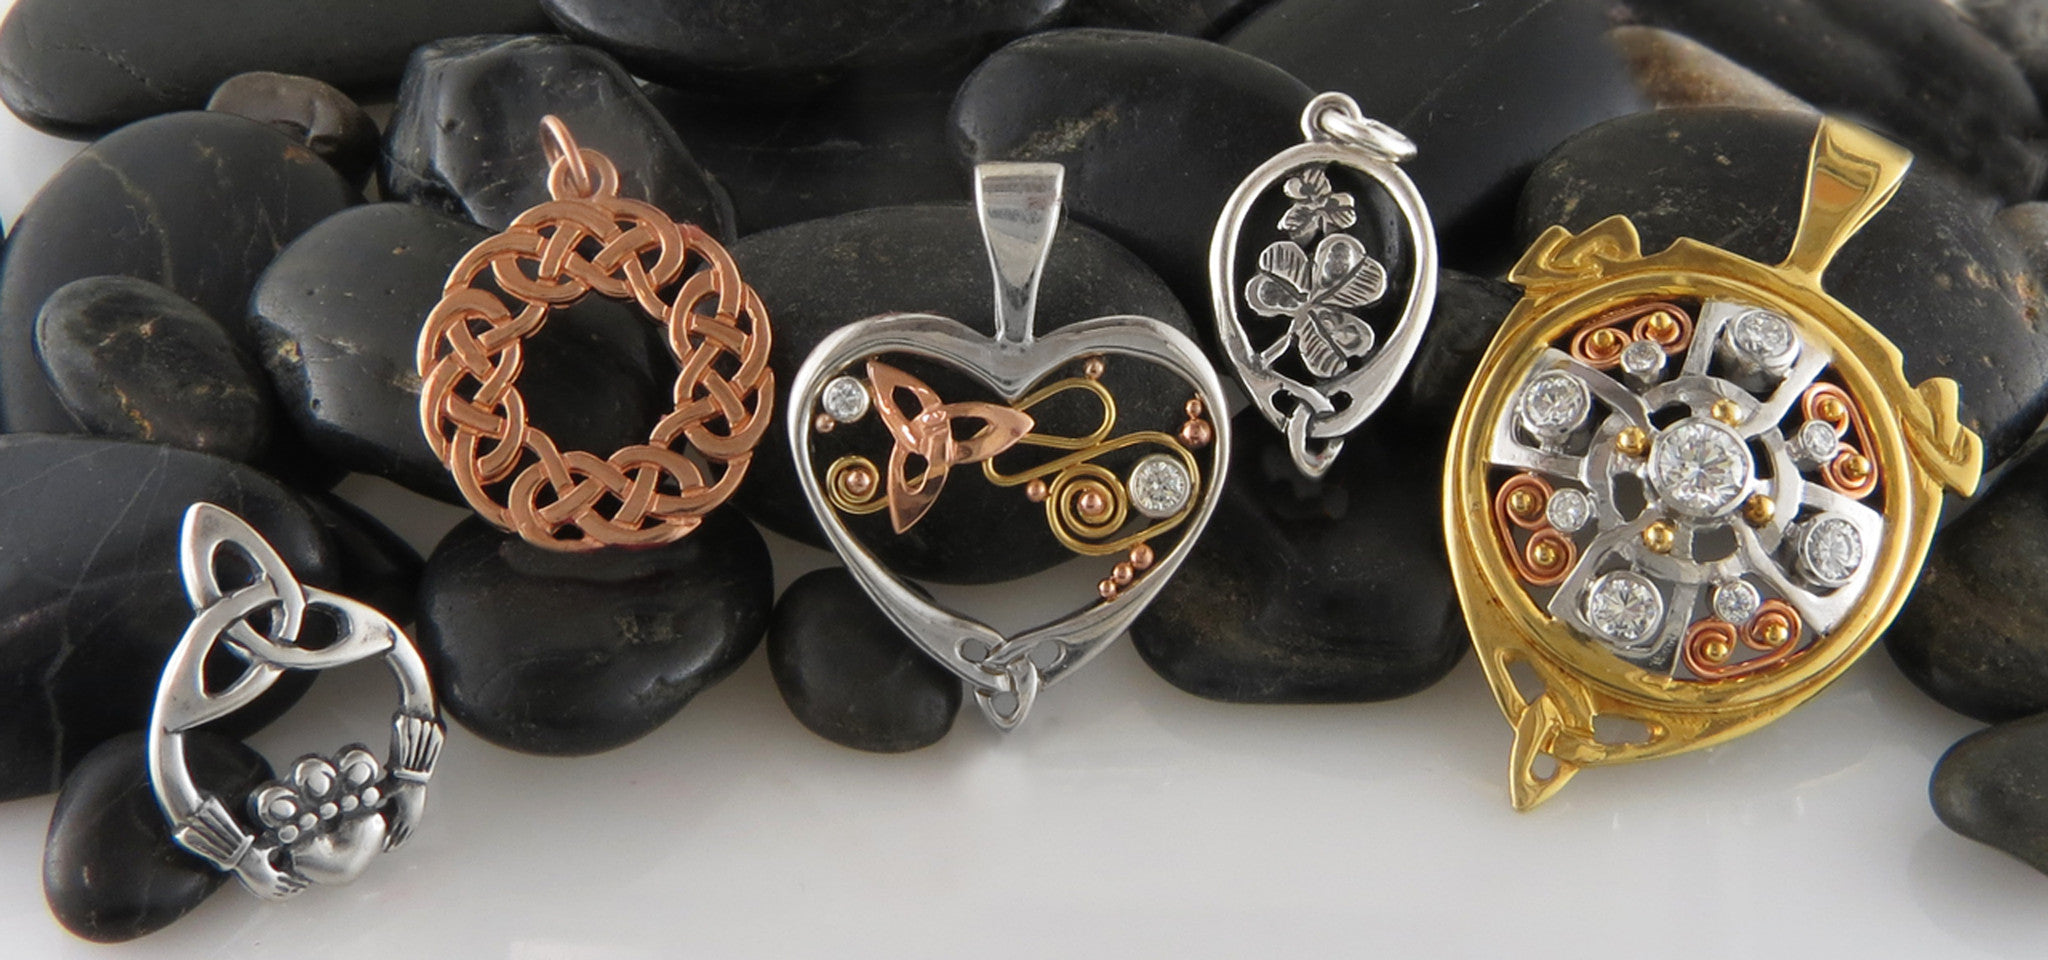 Celtic pendants in 14k gold and sterling silver tagged silver handcrafted celtic pendants and necklaces in sterling silver and gold are a fashionable statement of your heritage and faith our jewelry designers draw on mozeypictures Image collections